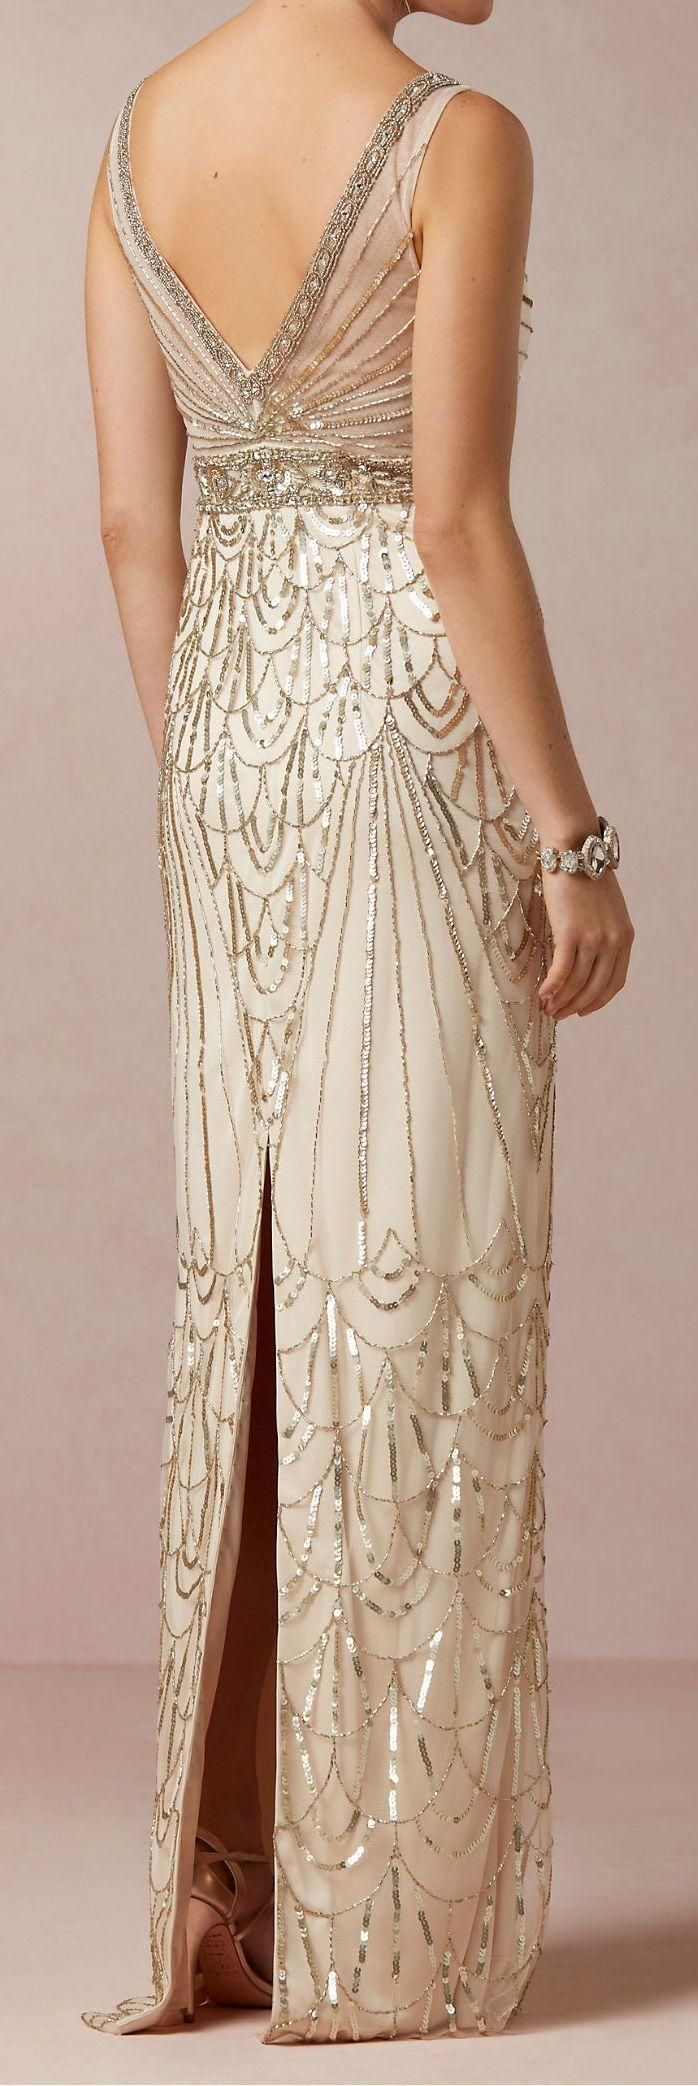 Wedding - Art Deco Gown | s t r e a m l ined •°• | Pinterest | Art ...